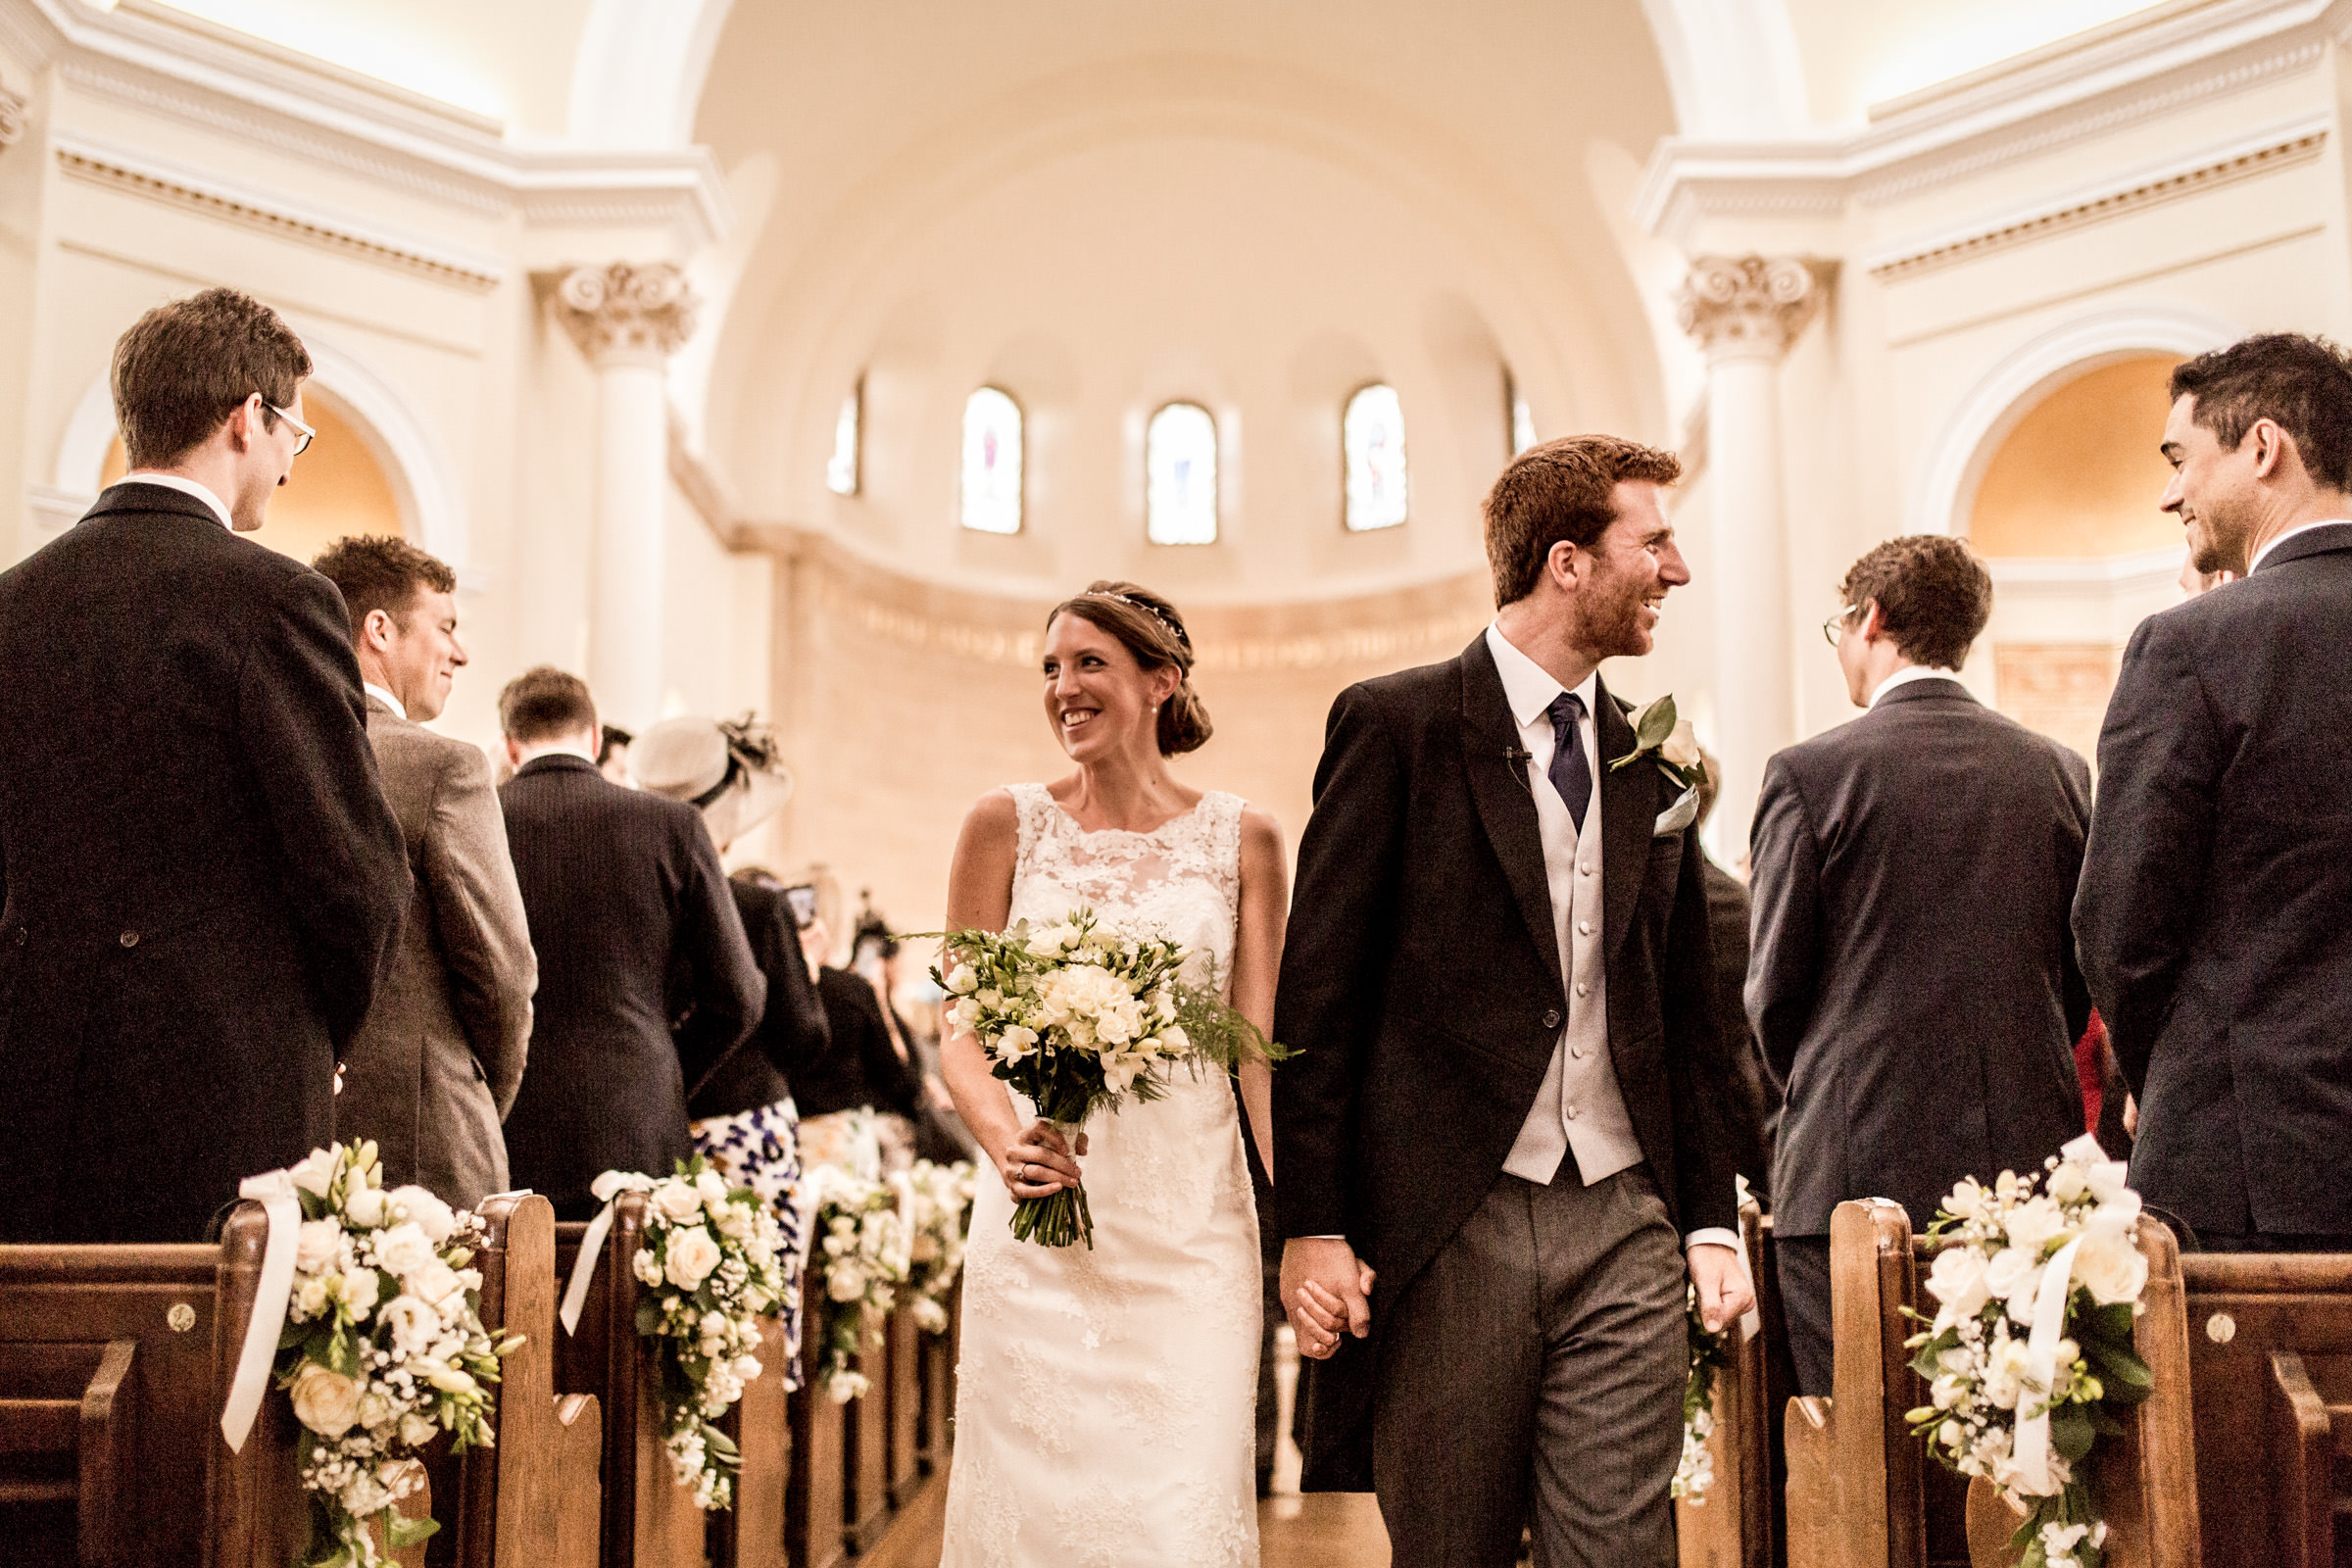 natural wedding photography at haileybury chapel in hertfordshire 022.jpg